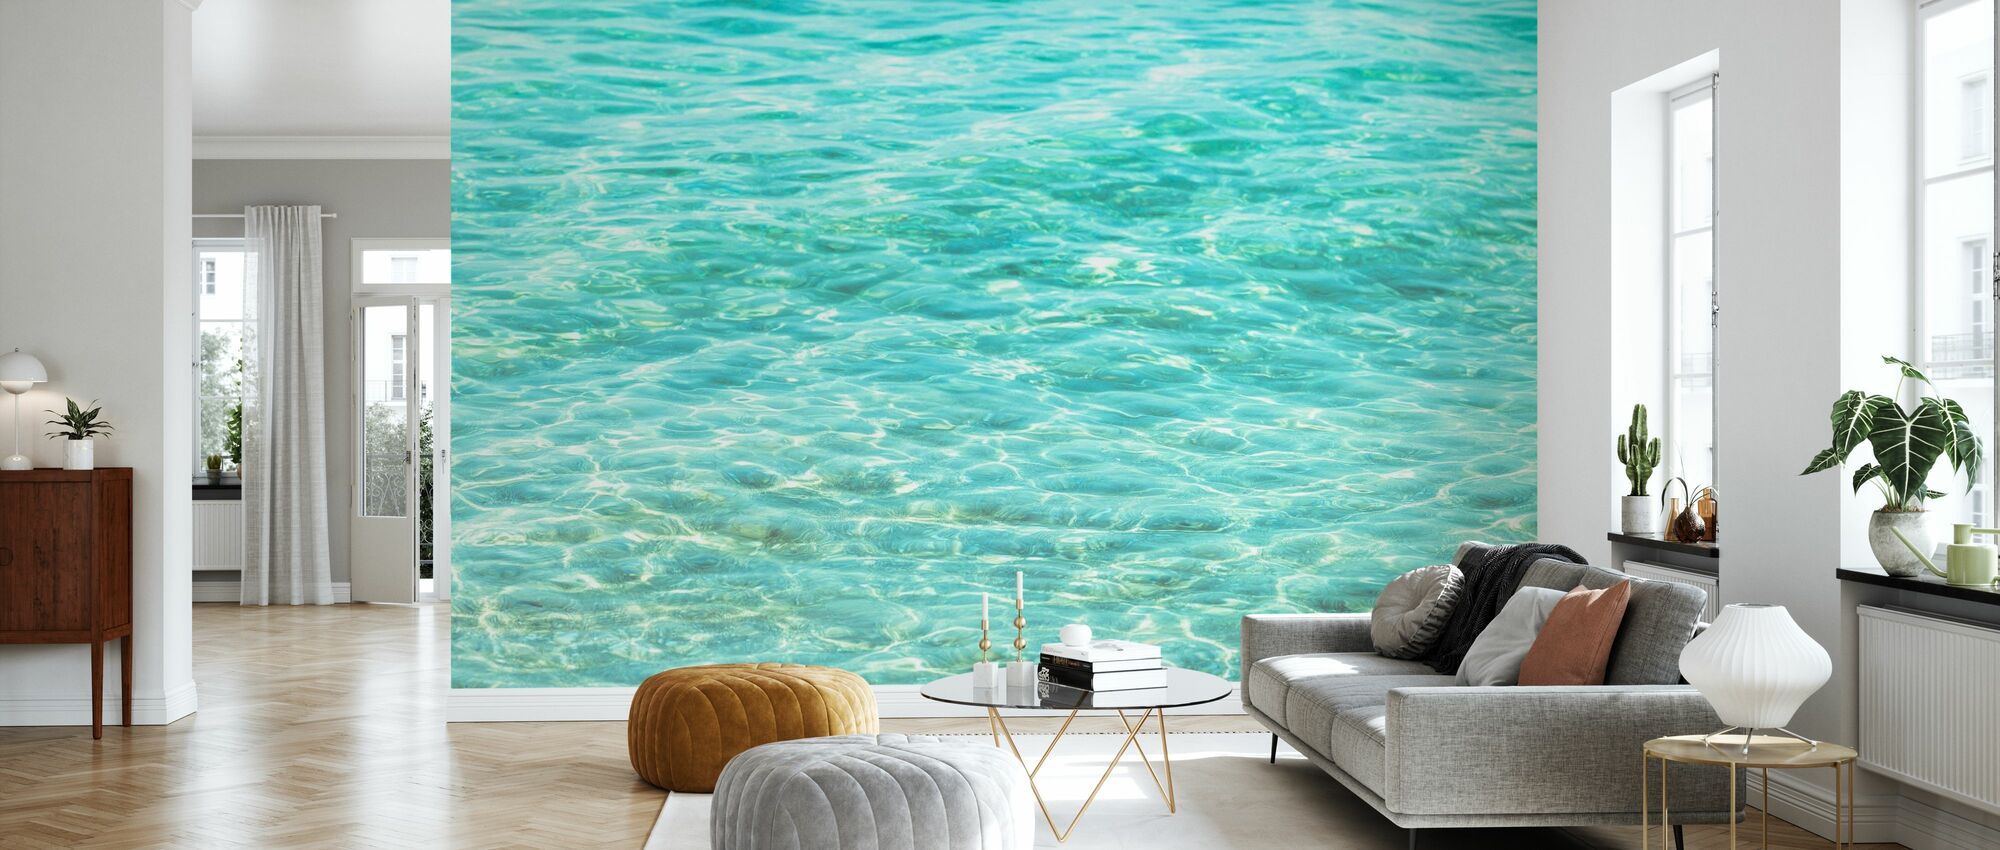 Inviting Sea - Wallpaper - Living Room